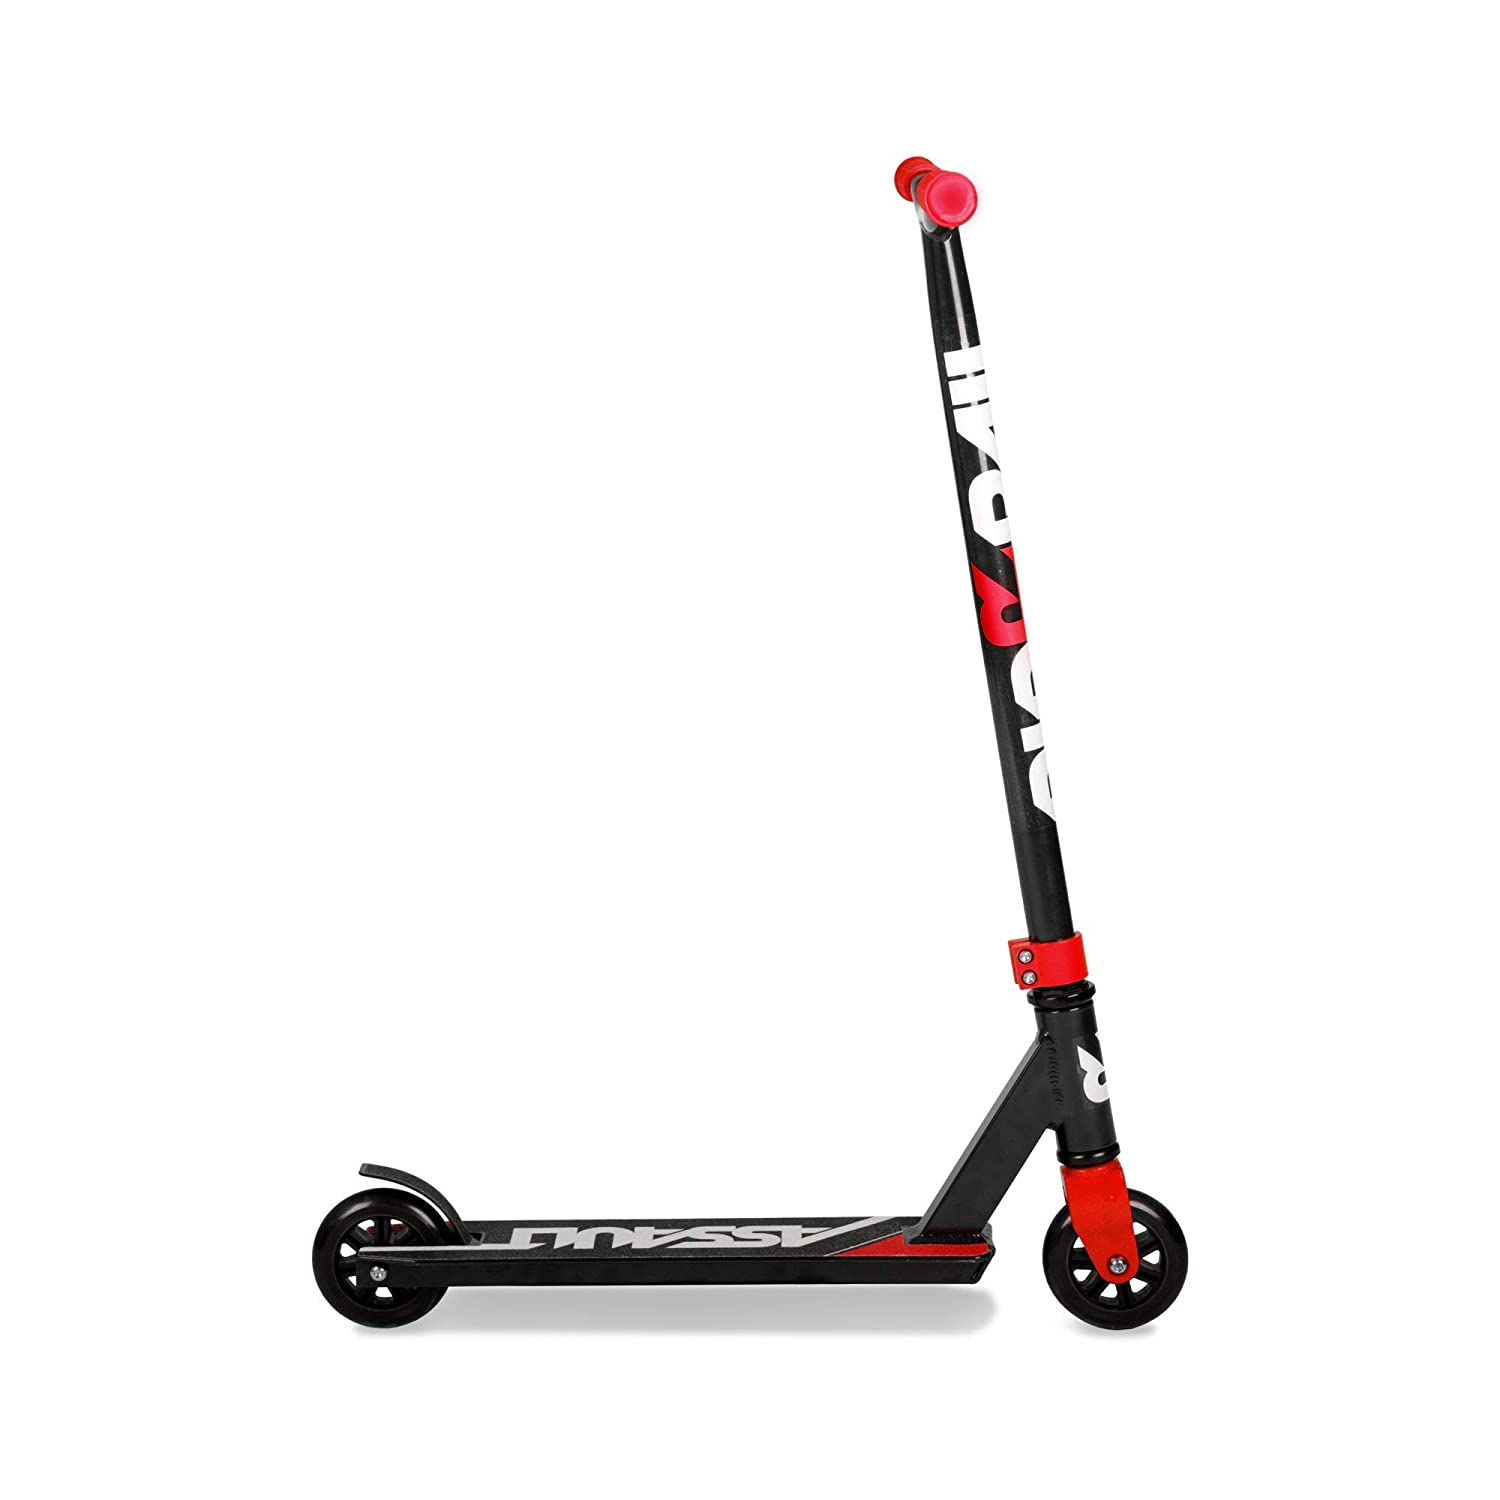 Riprail Assault Stunt Scooter Finished in Black//Red with Alloy Deck and ABEC-7 Bearings